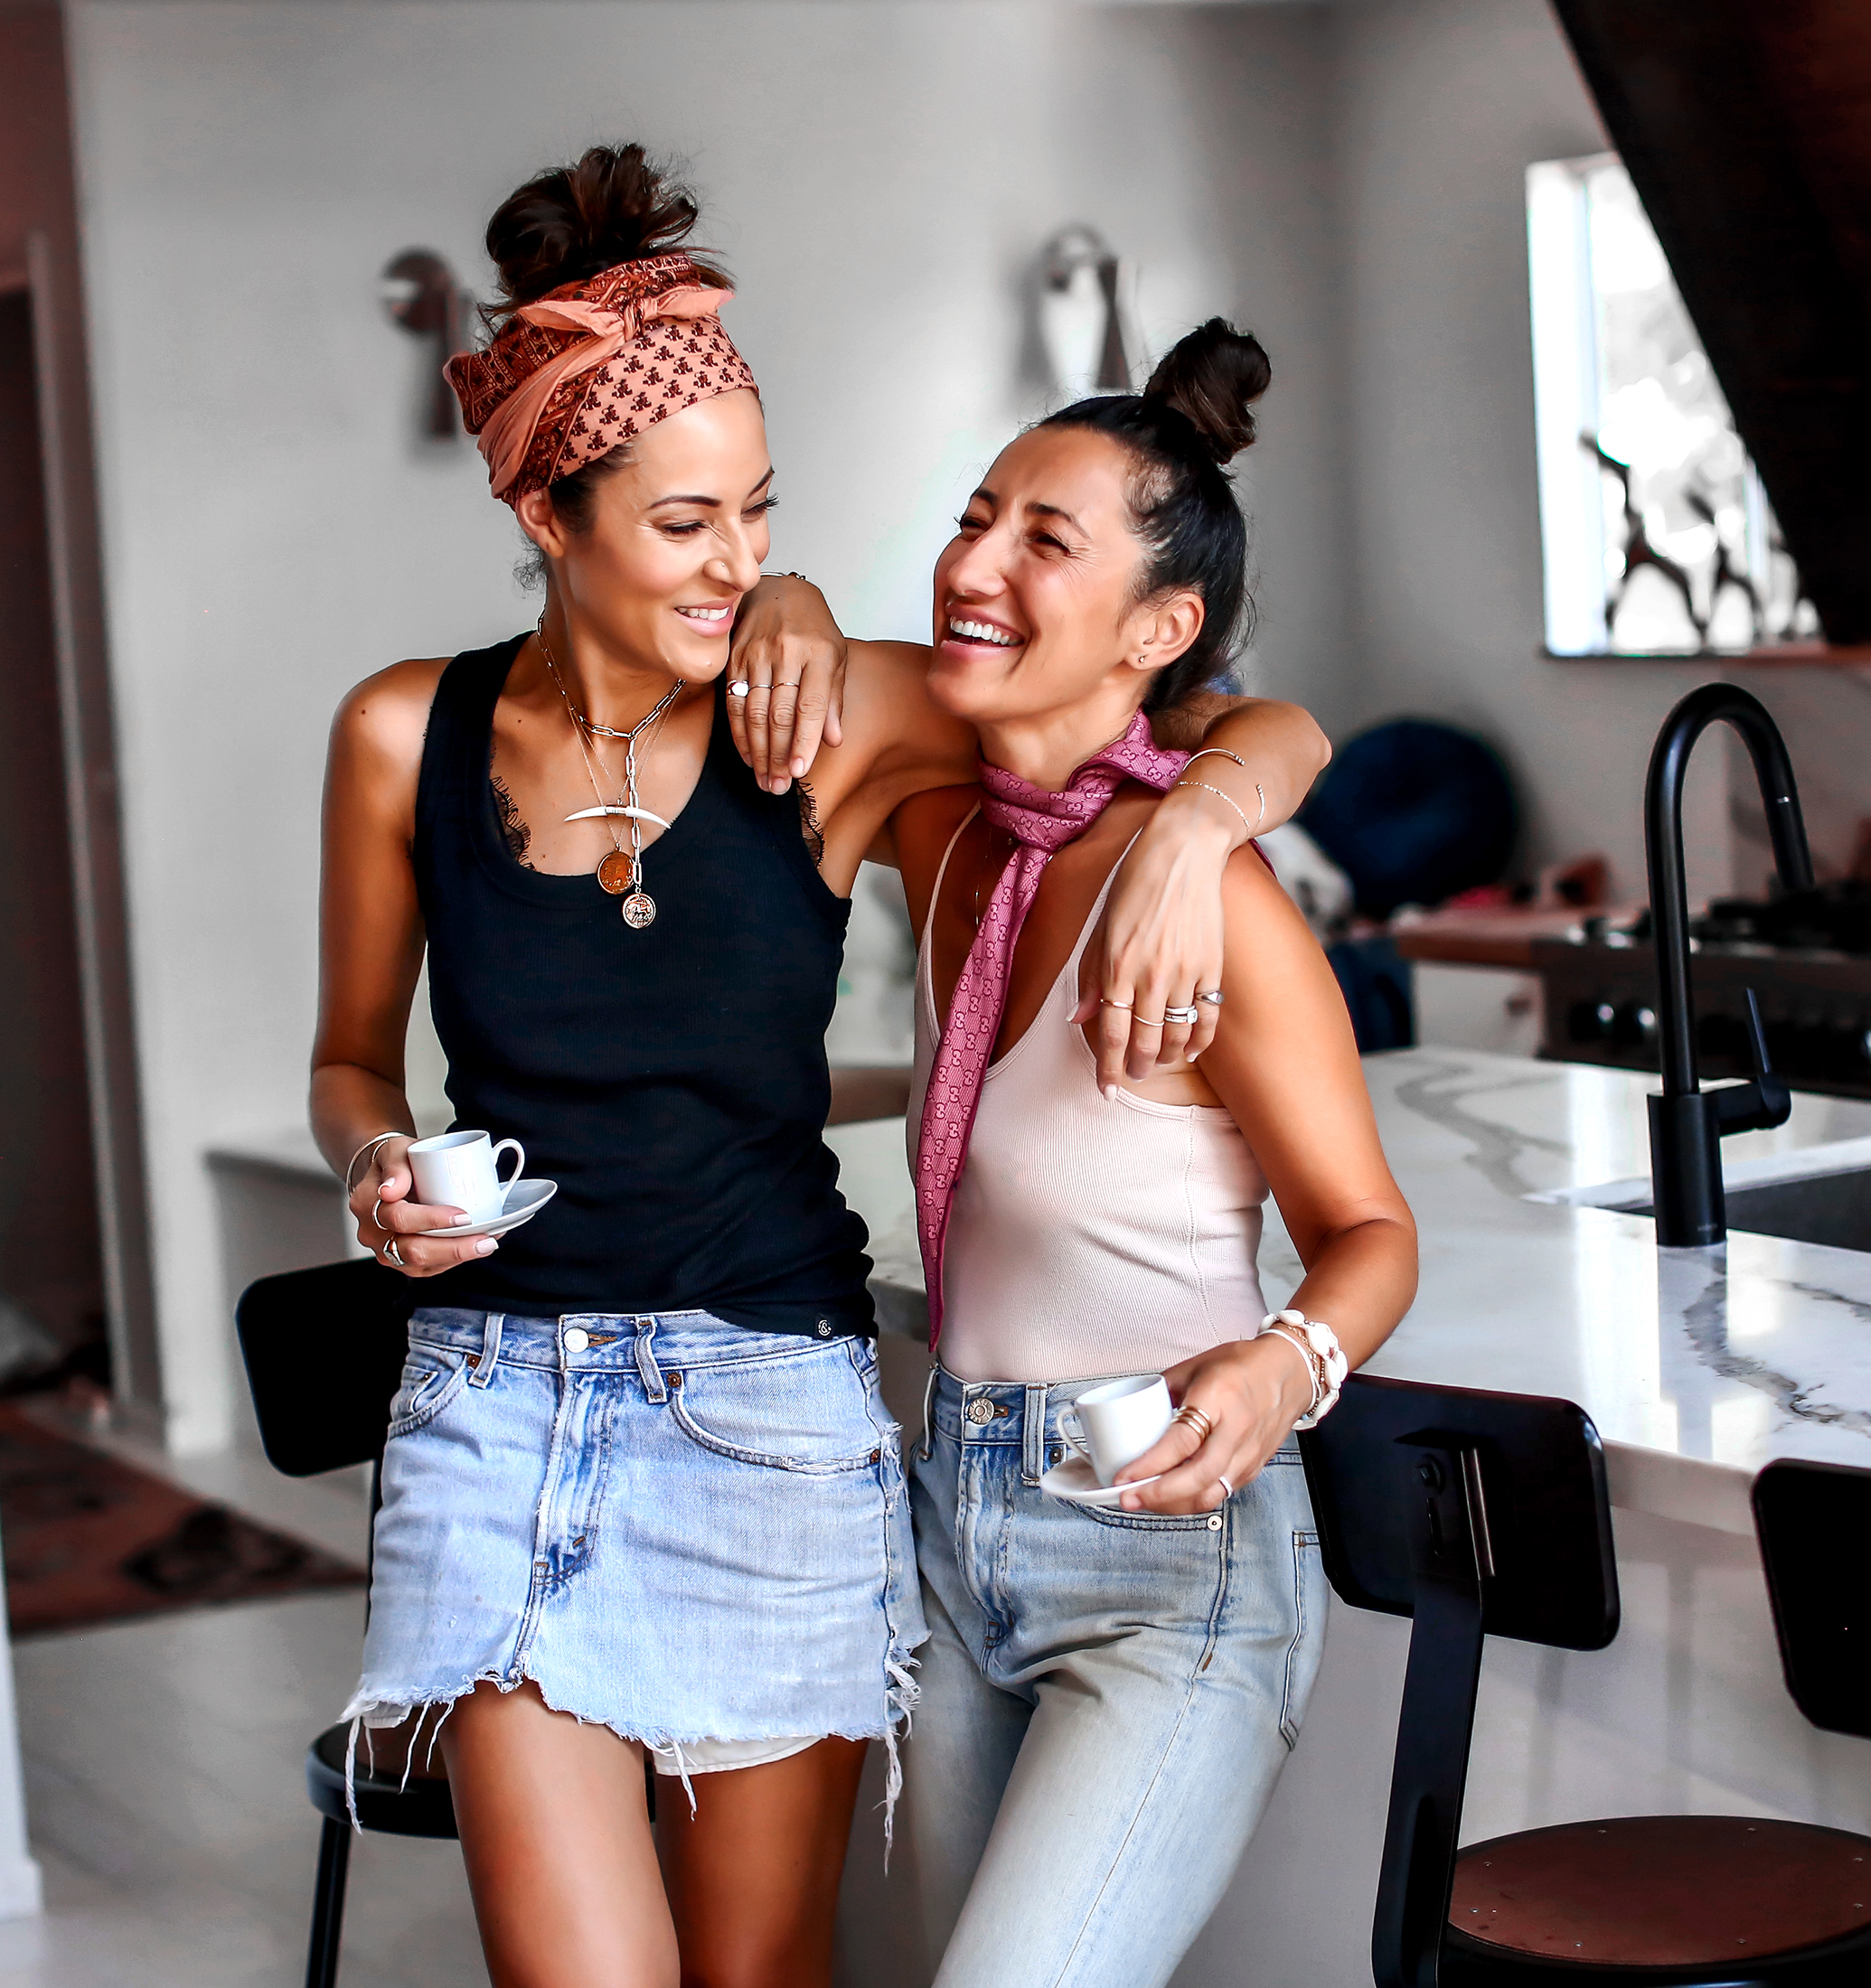 Brunette Best Friends Laughing